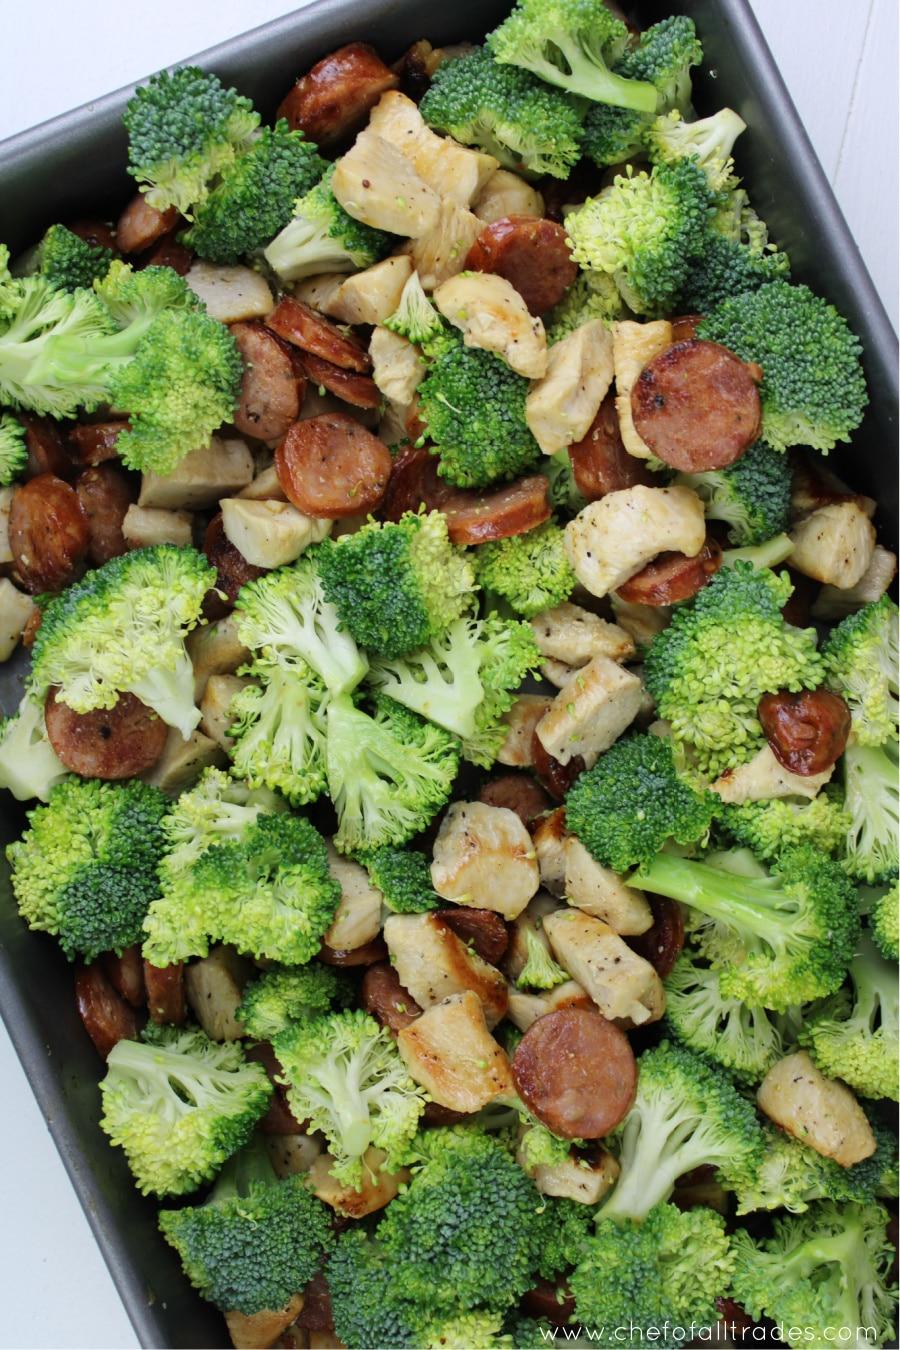 chicken broccoli and sausage mixed together in a casserole dish